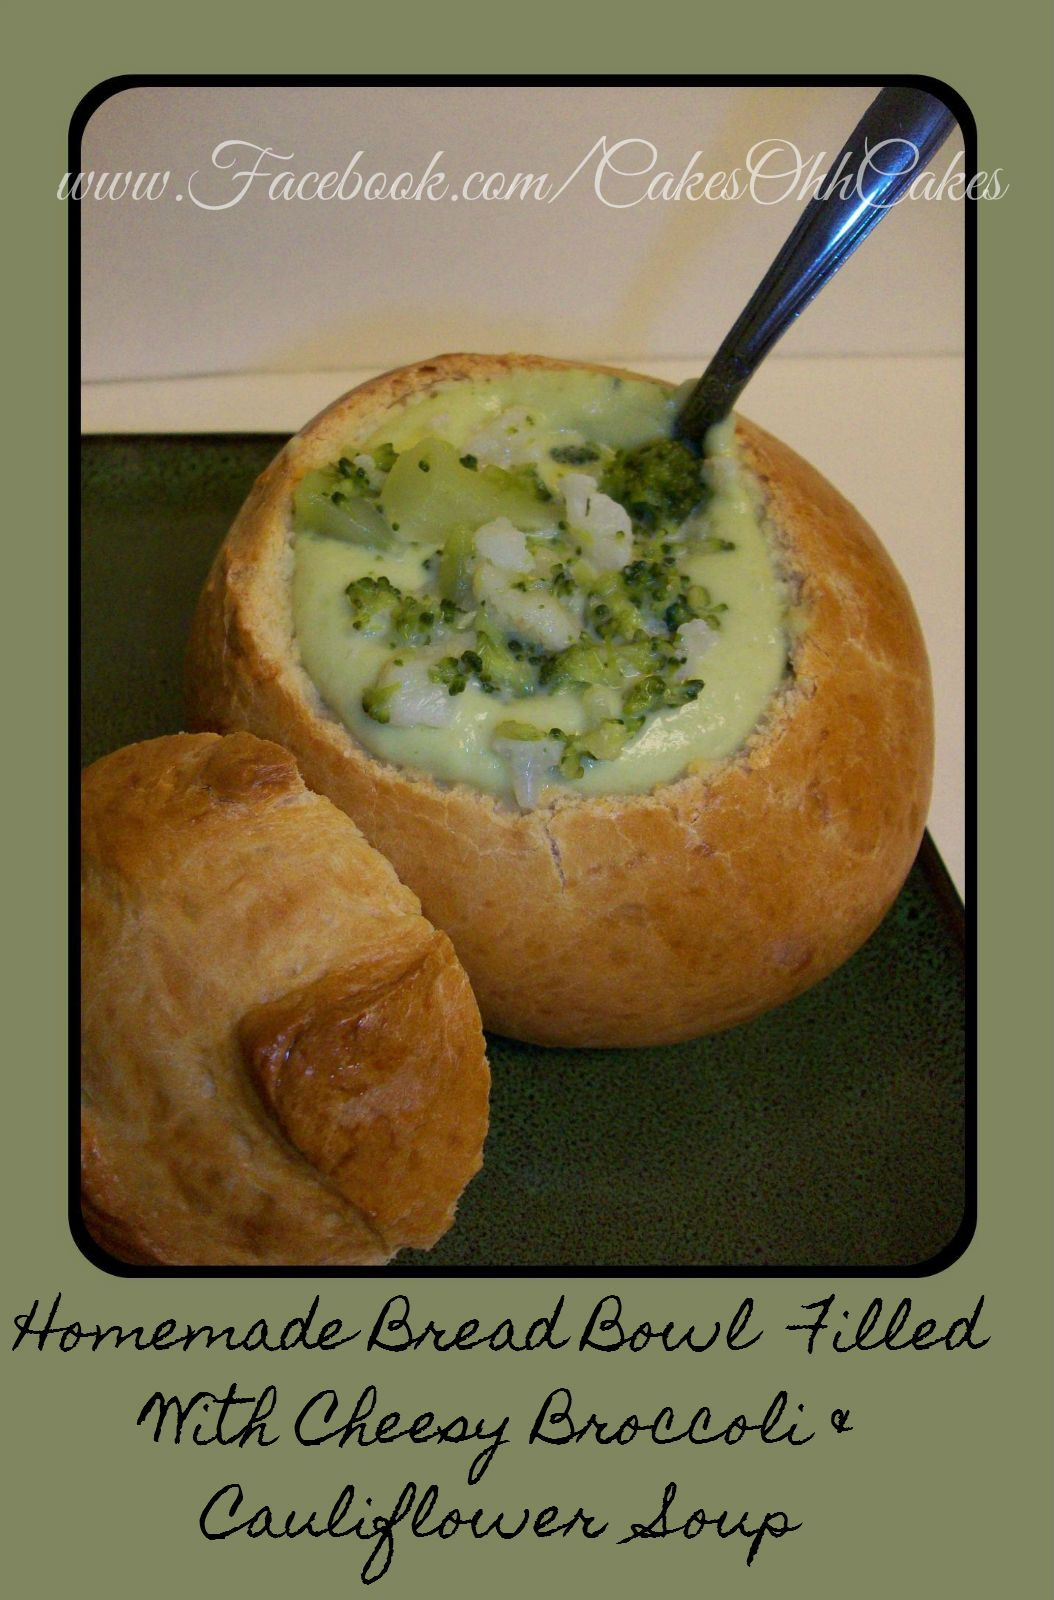 Find Both The Bread Bowl Soup Recipes At Www Facebook Com